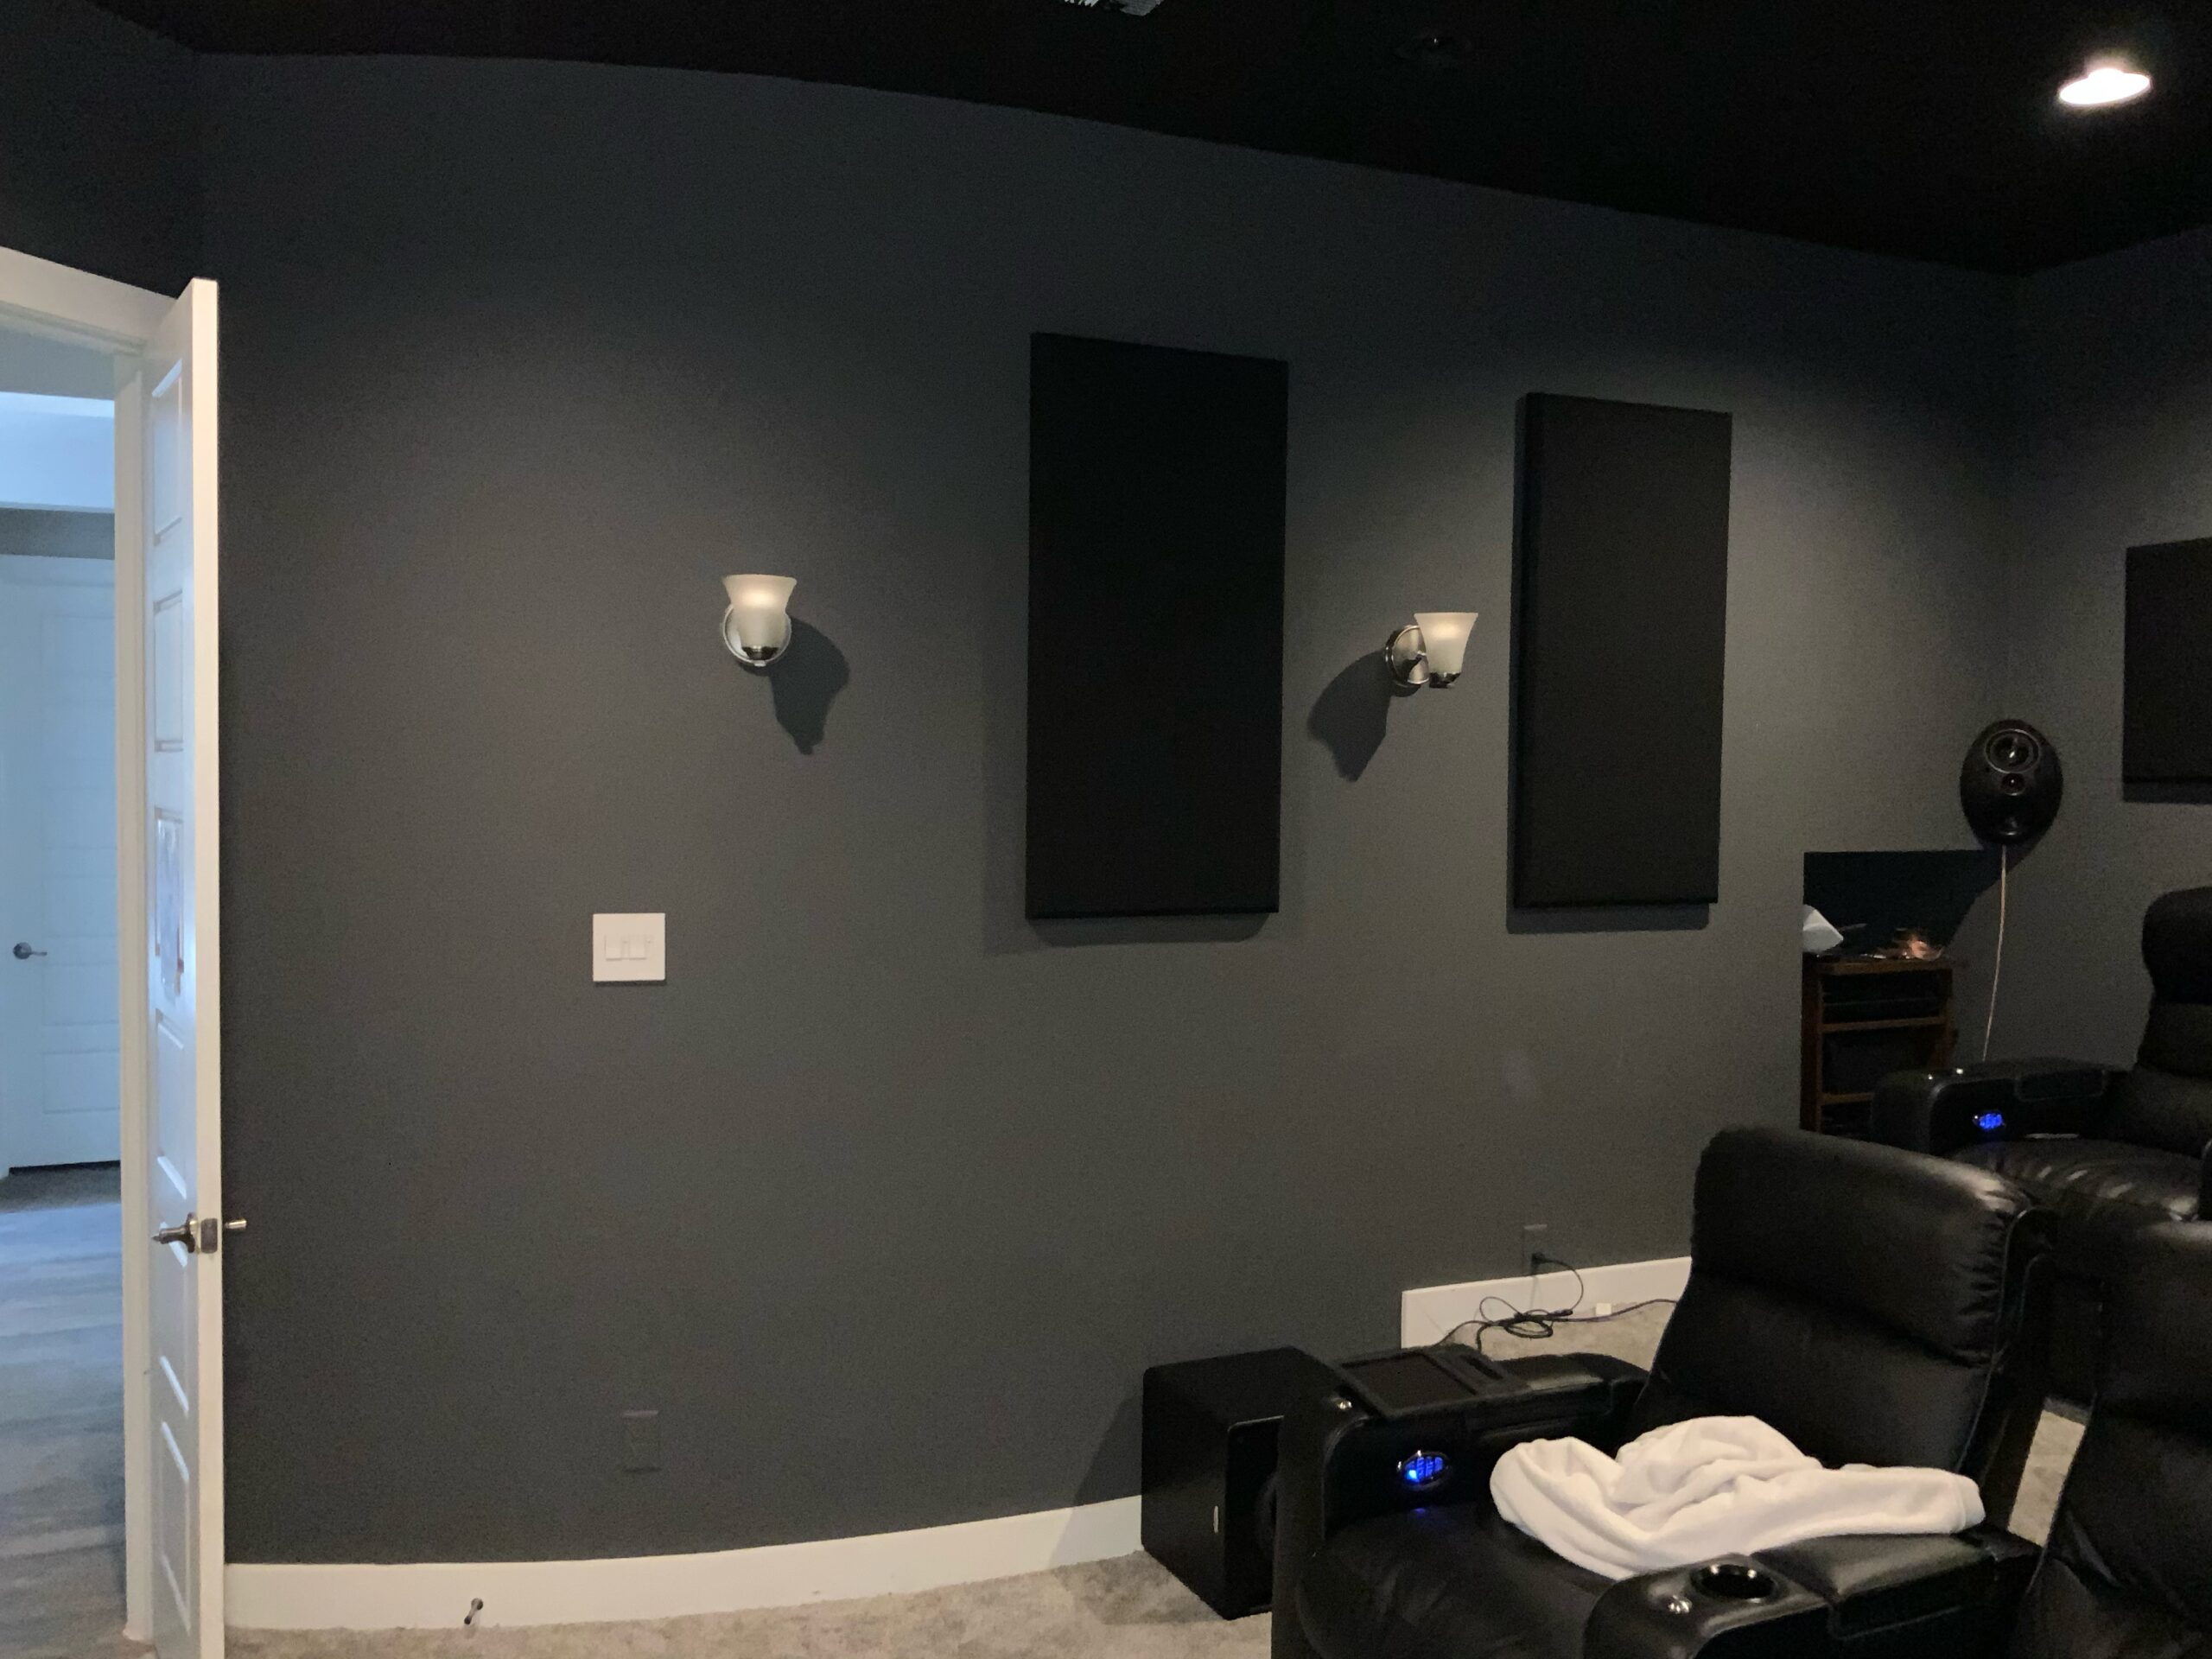 Home theater sound system with acoustic panels